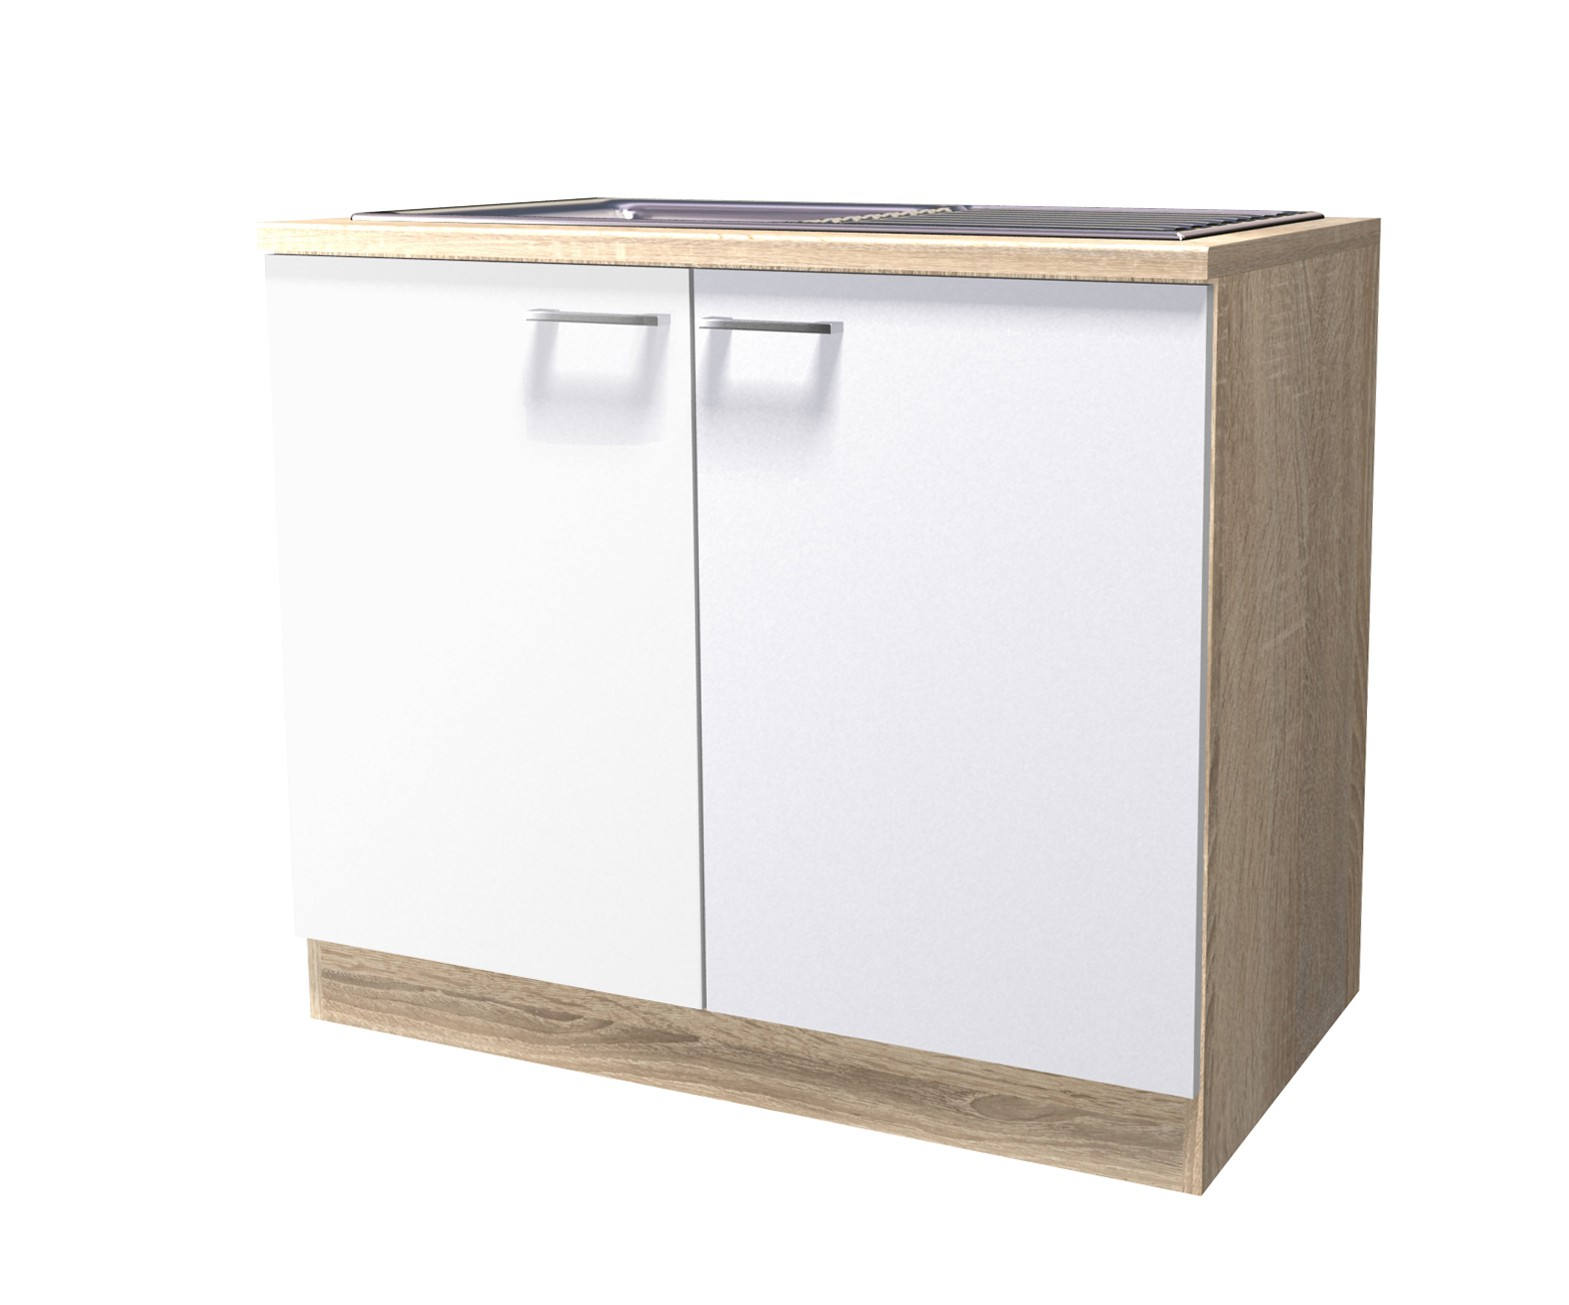 neu sp le k chen sp lenschrank rom 100cm sp lschrank weiss sonoma ebay. Black Bedroom Furniture Sets. Home Design Ideas